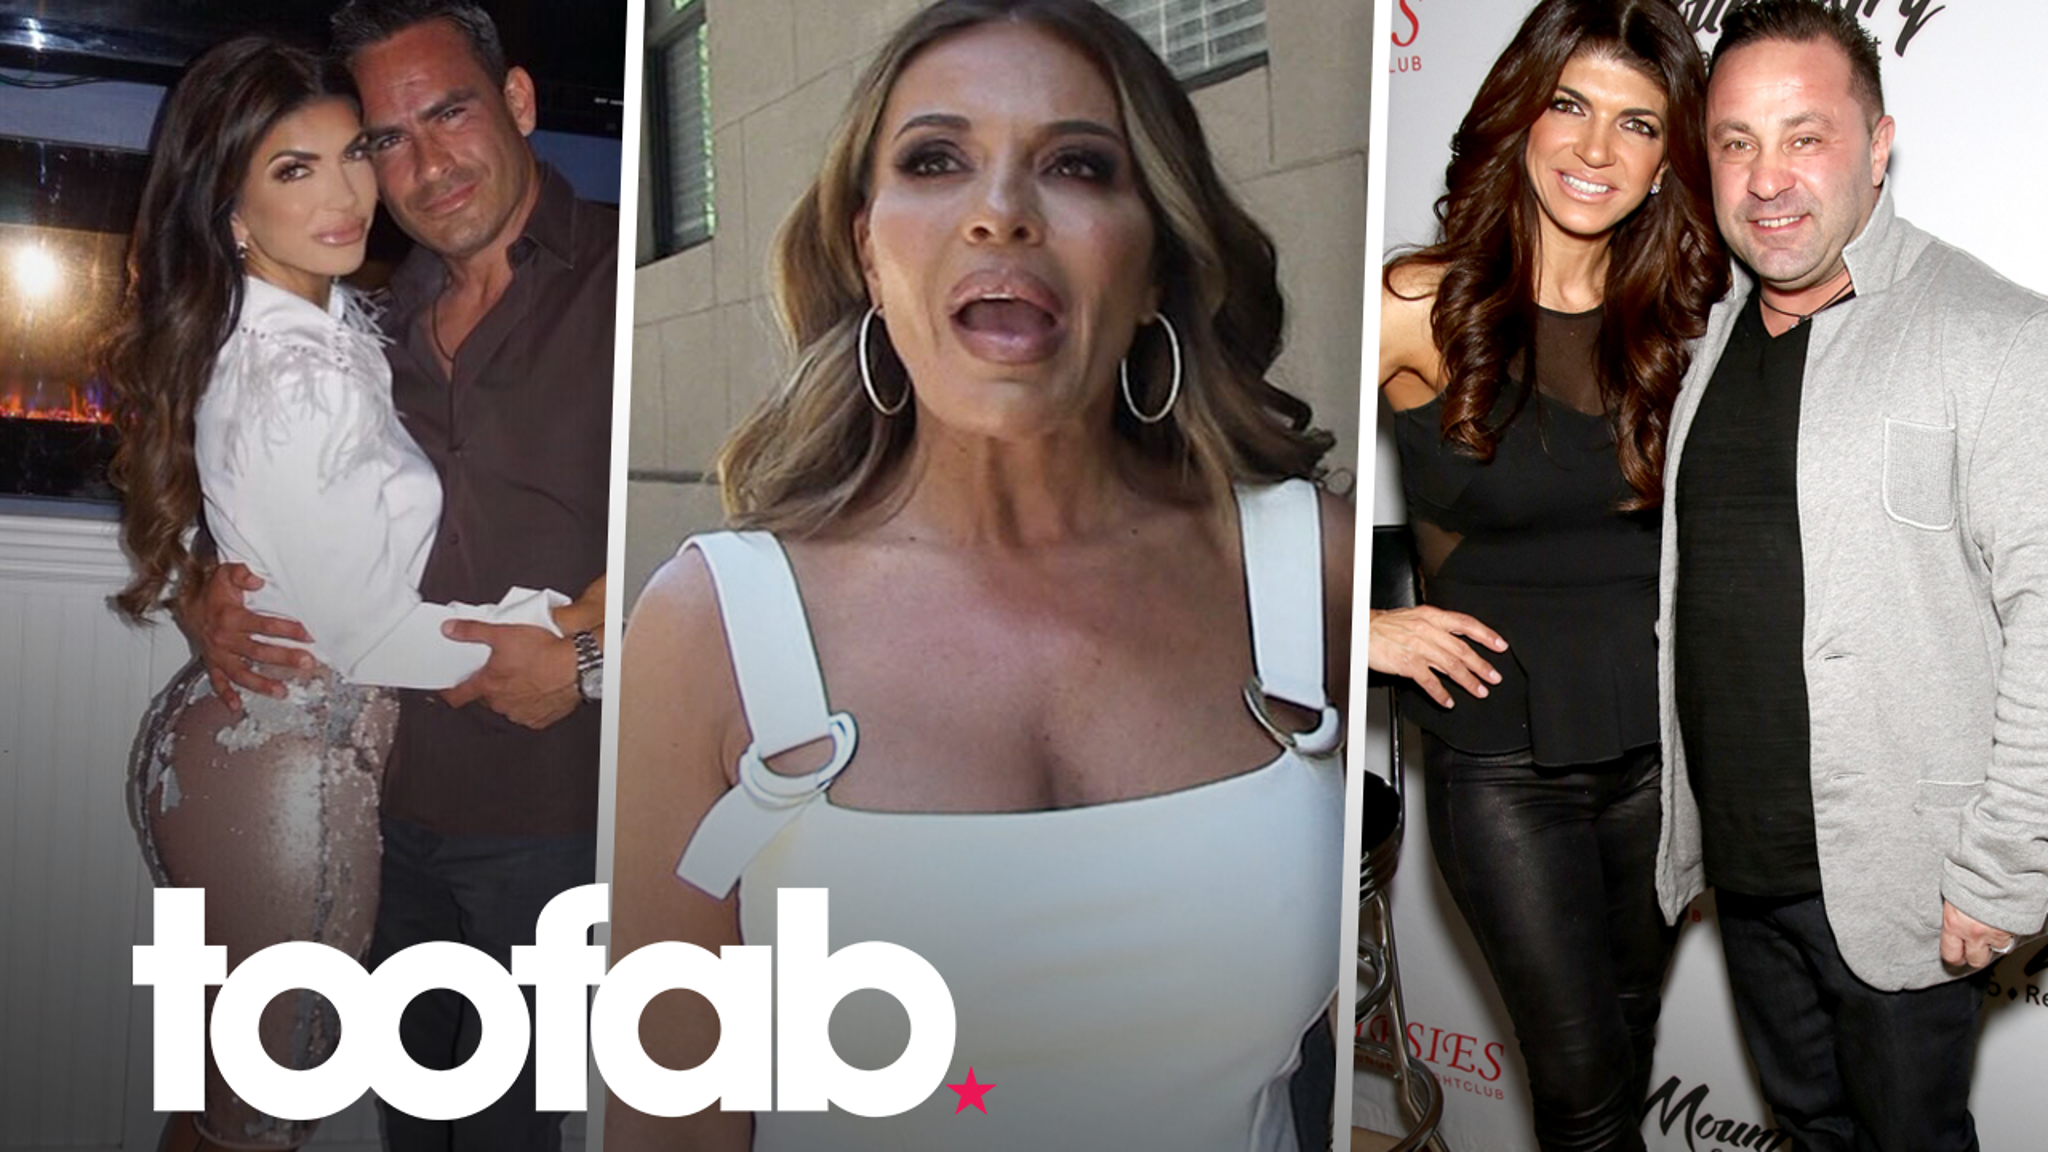 Dolores Catania says Teresa Giudice is happier with the new Luis than she was ever with Joe